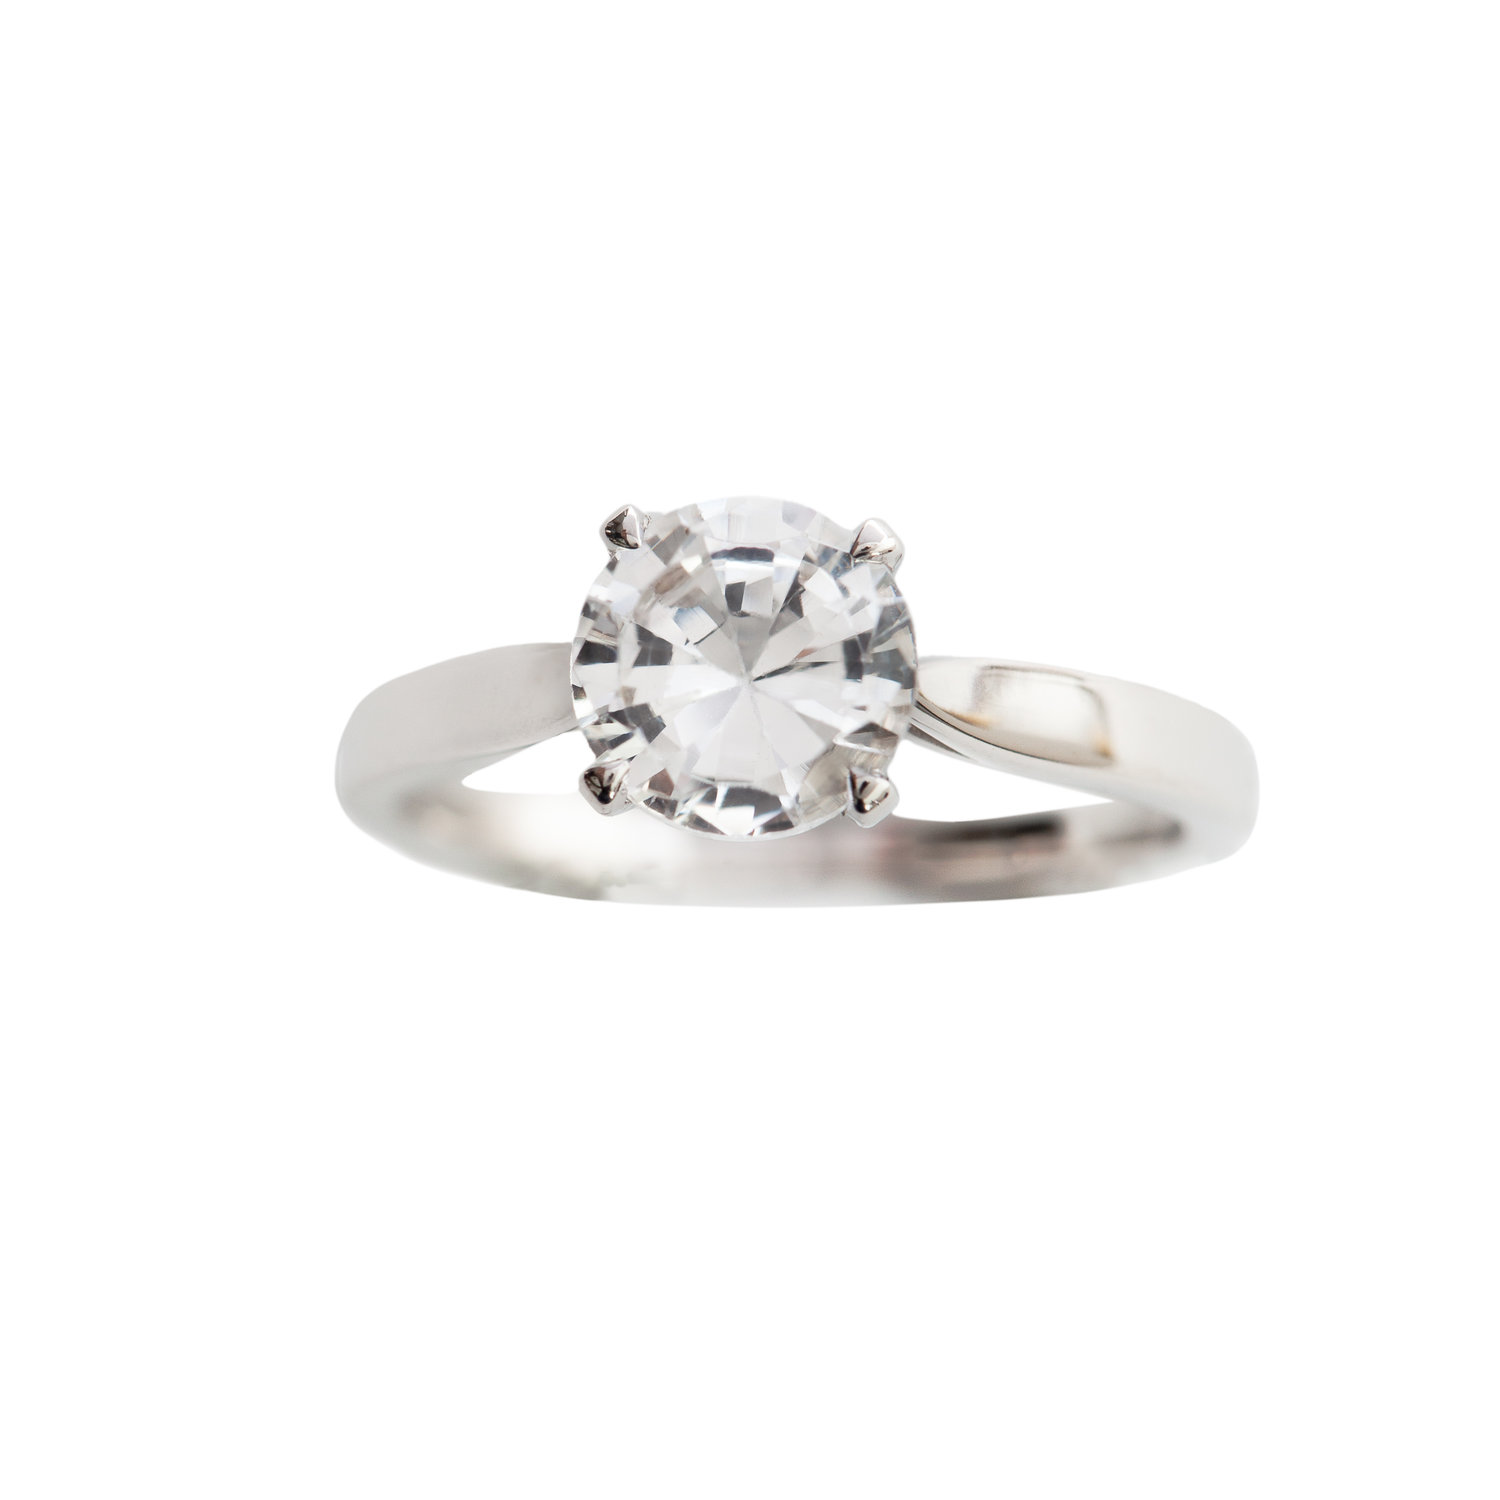 CLASSIC ENGAGEMENT RING - 15.000 NOK. 18 ct white gold. 1 ct solitaire cut white topaz.